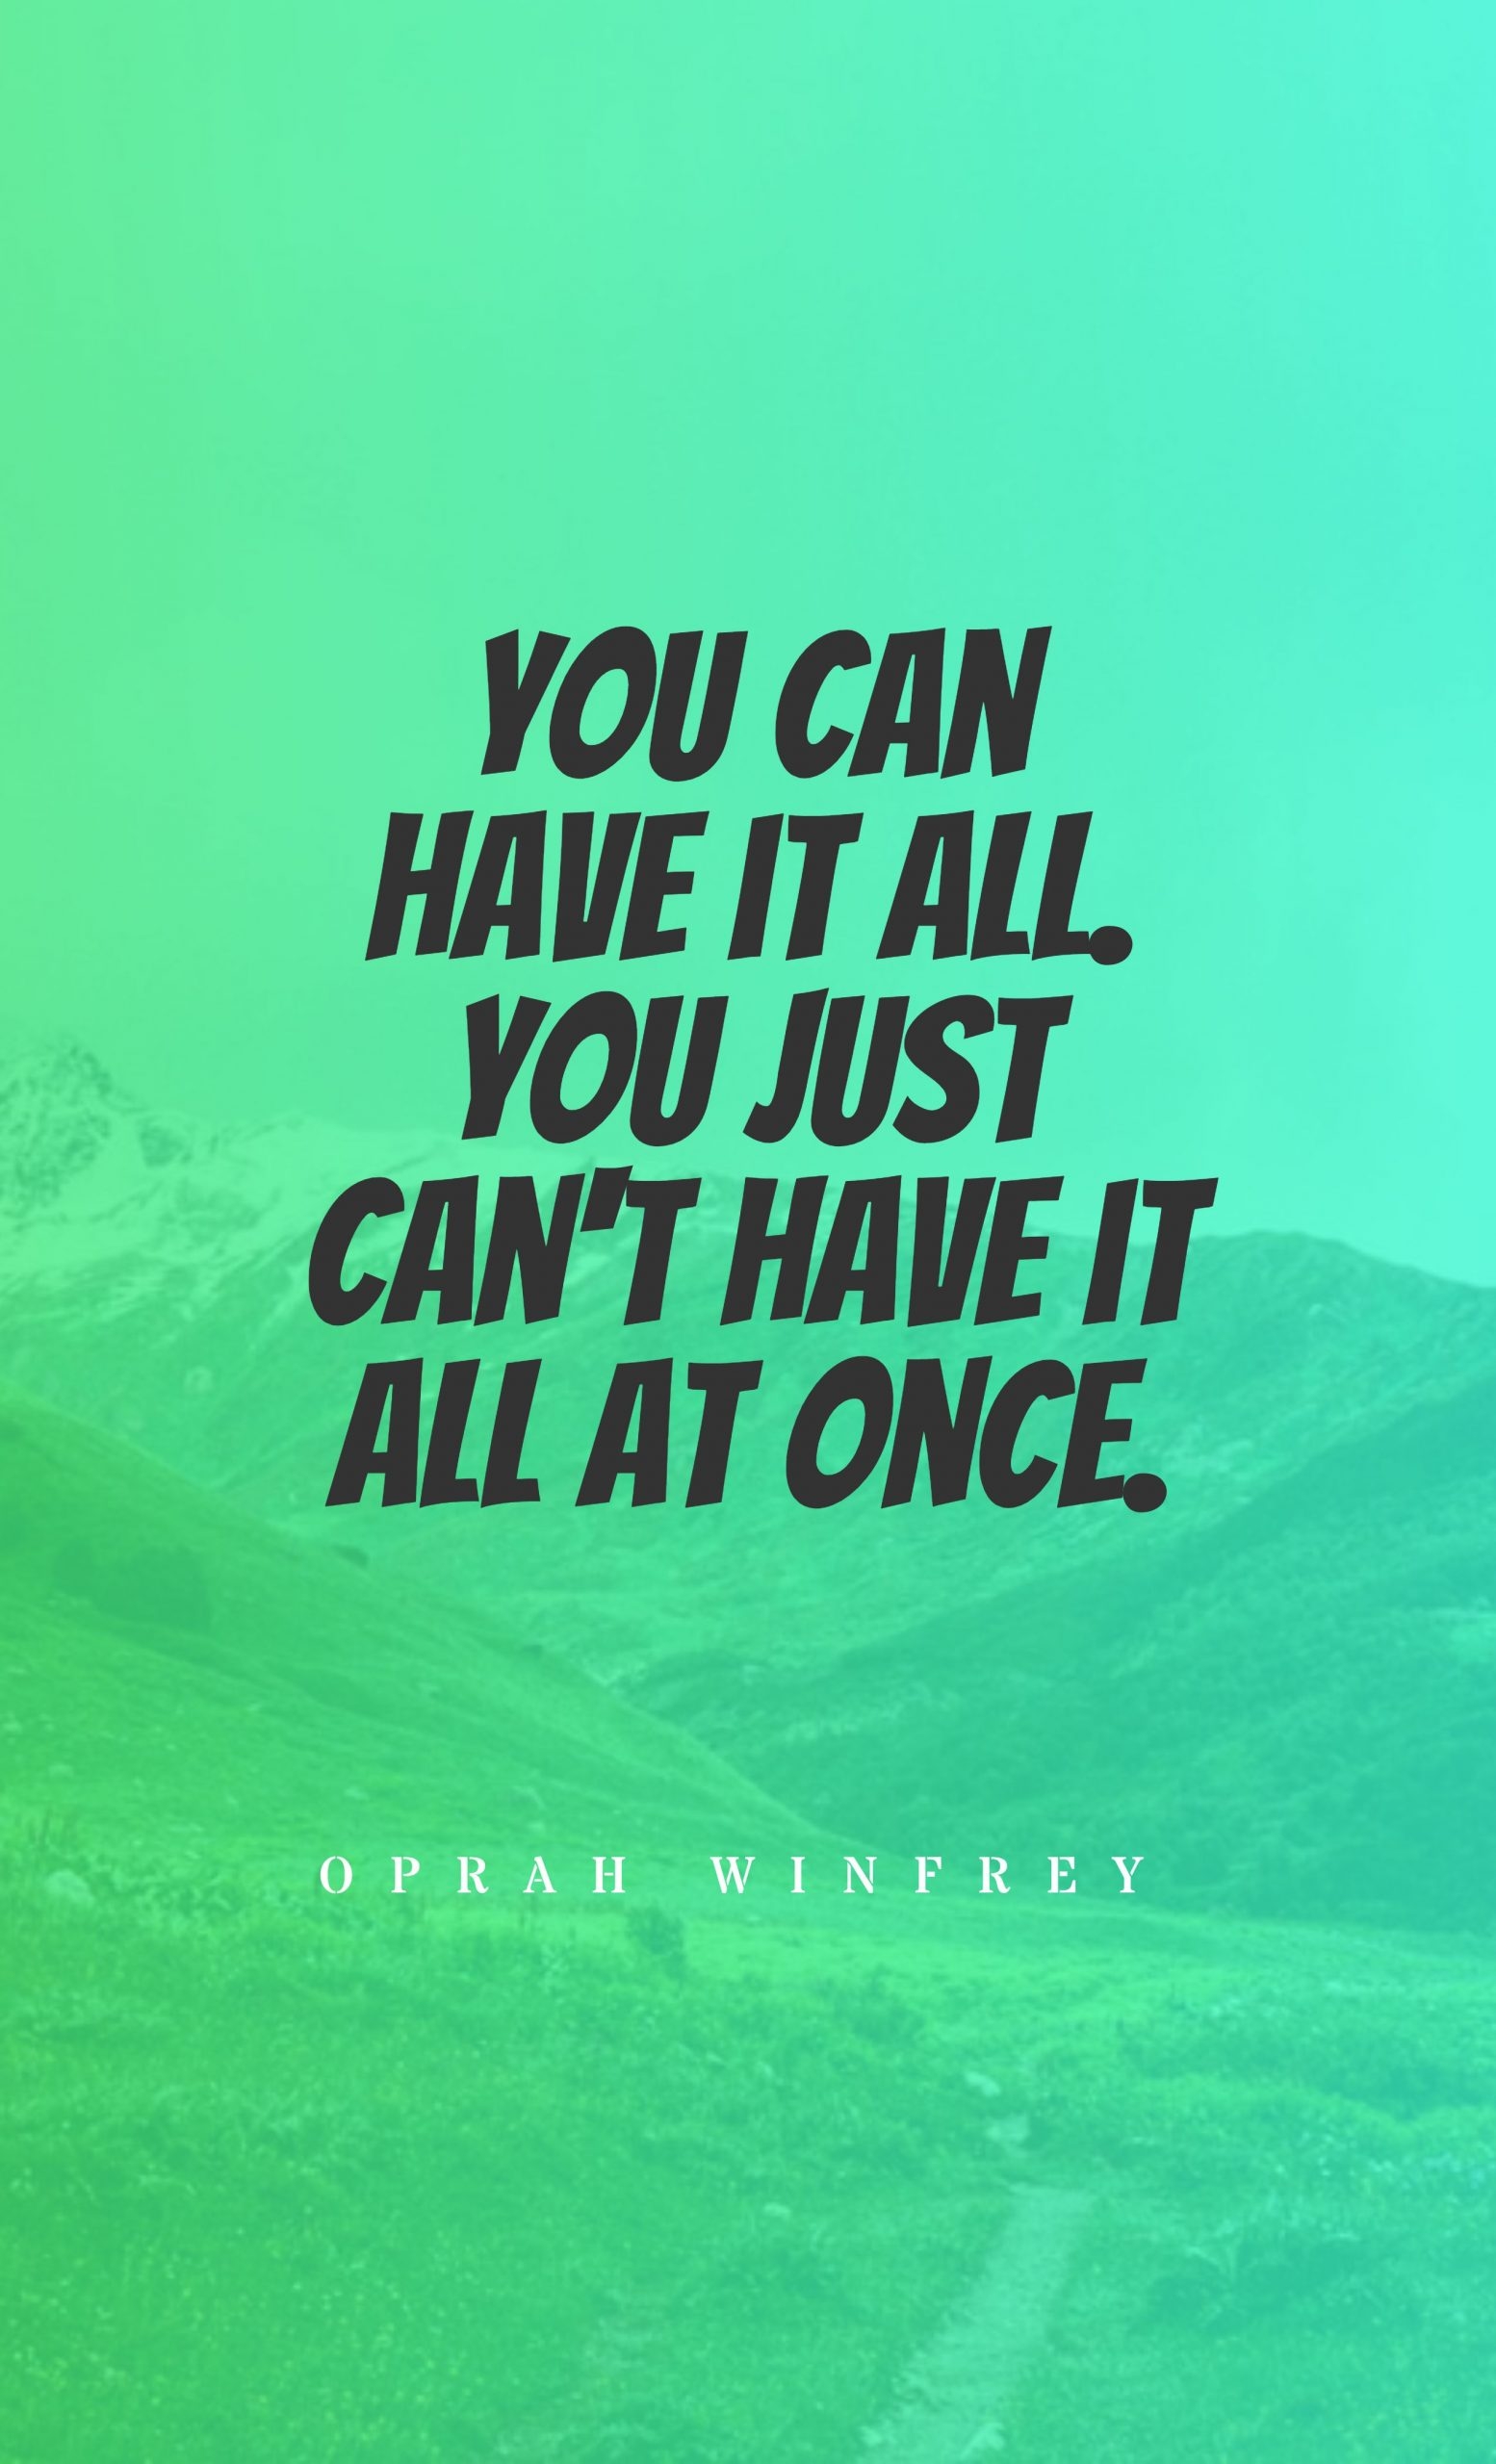 Quotes image of You can have it all. You just can't have it all at once.